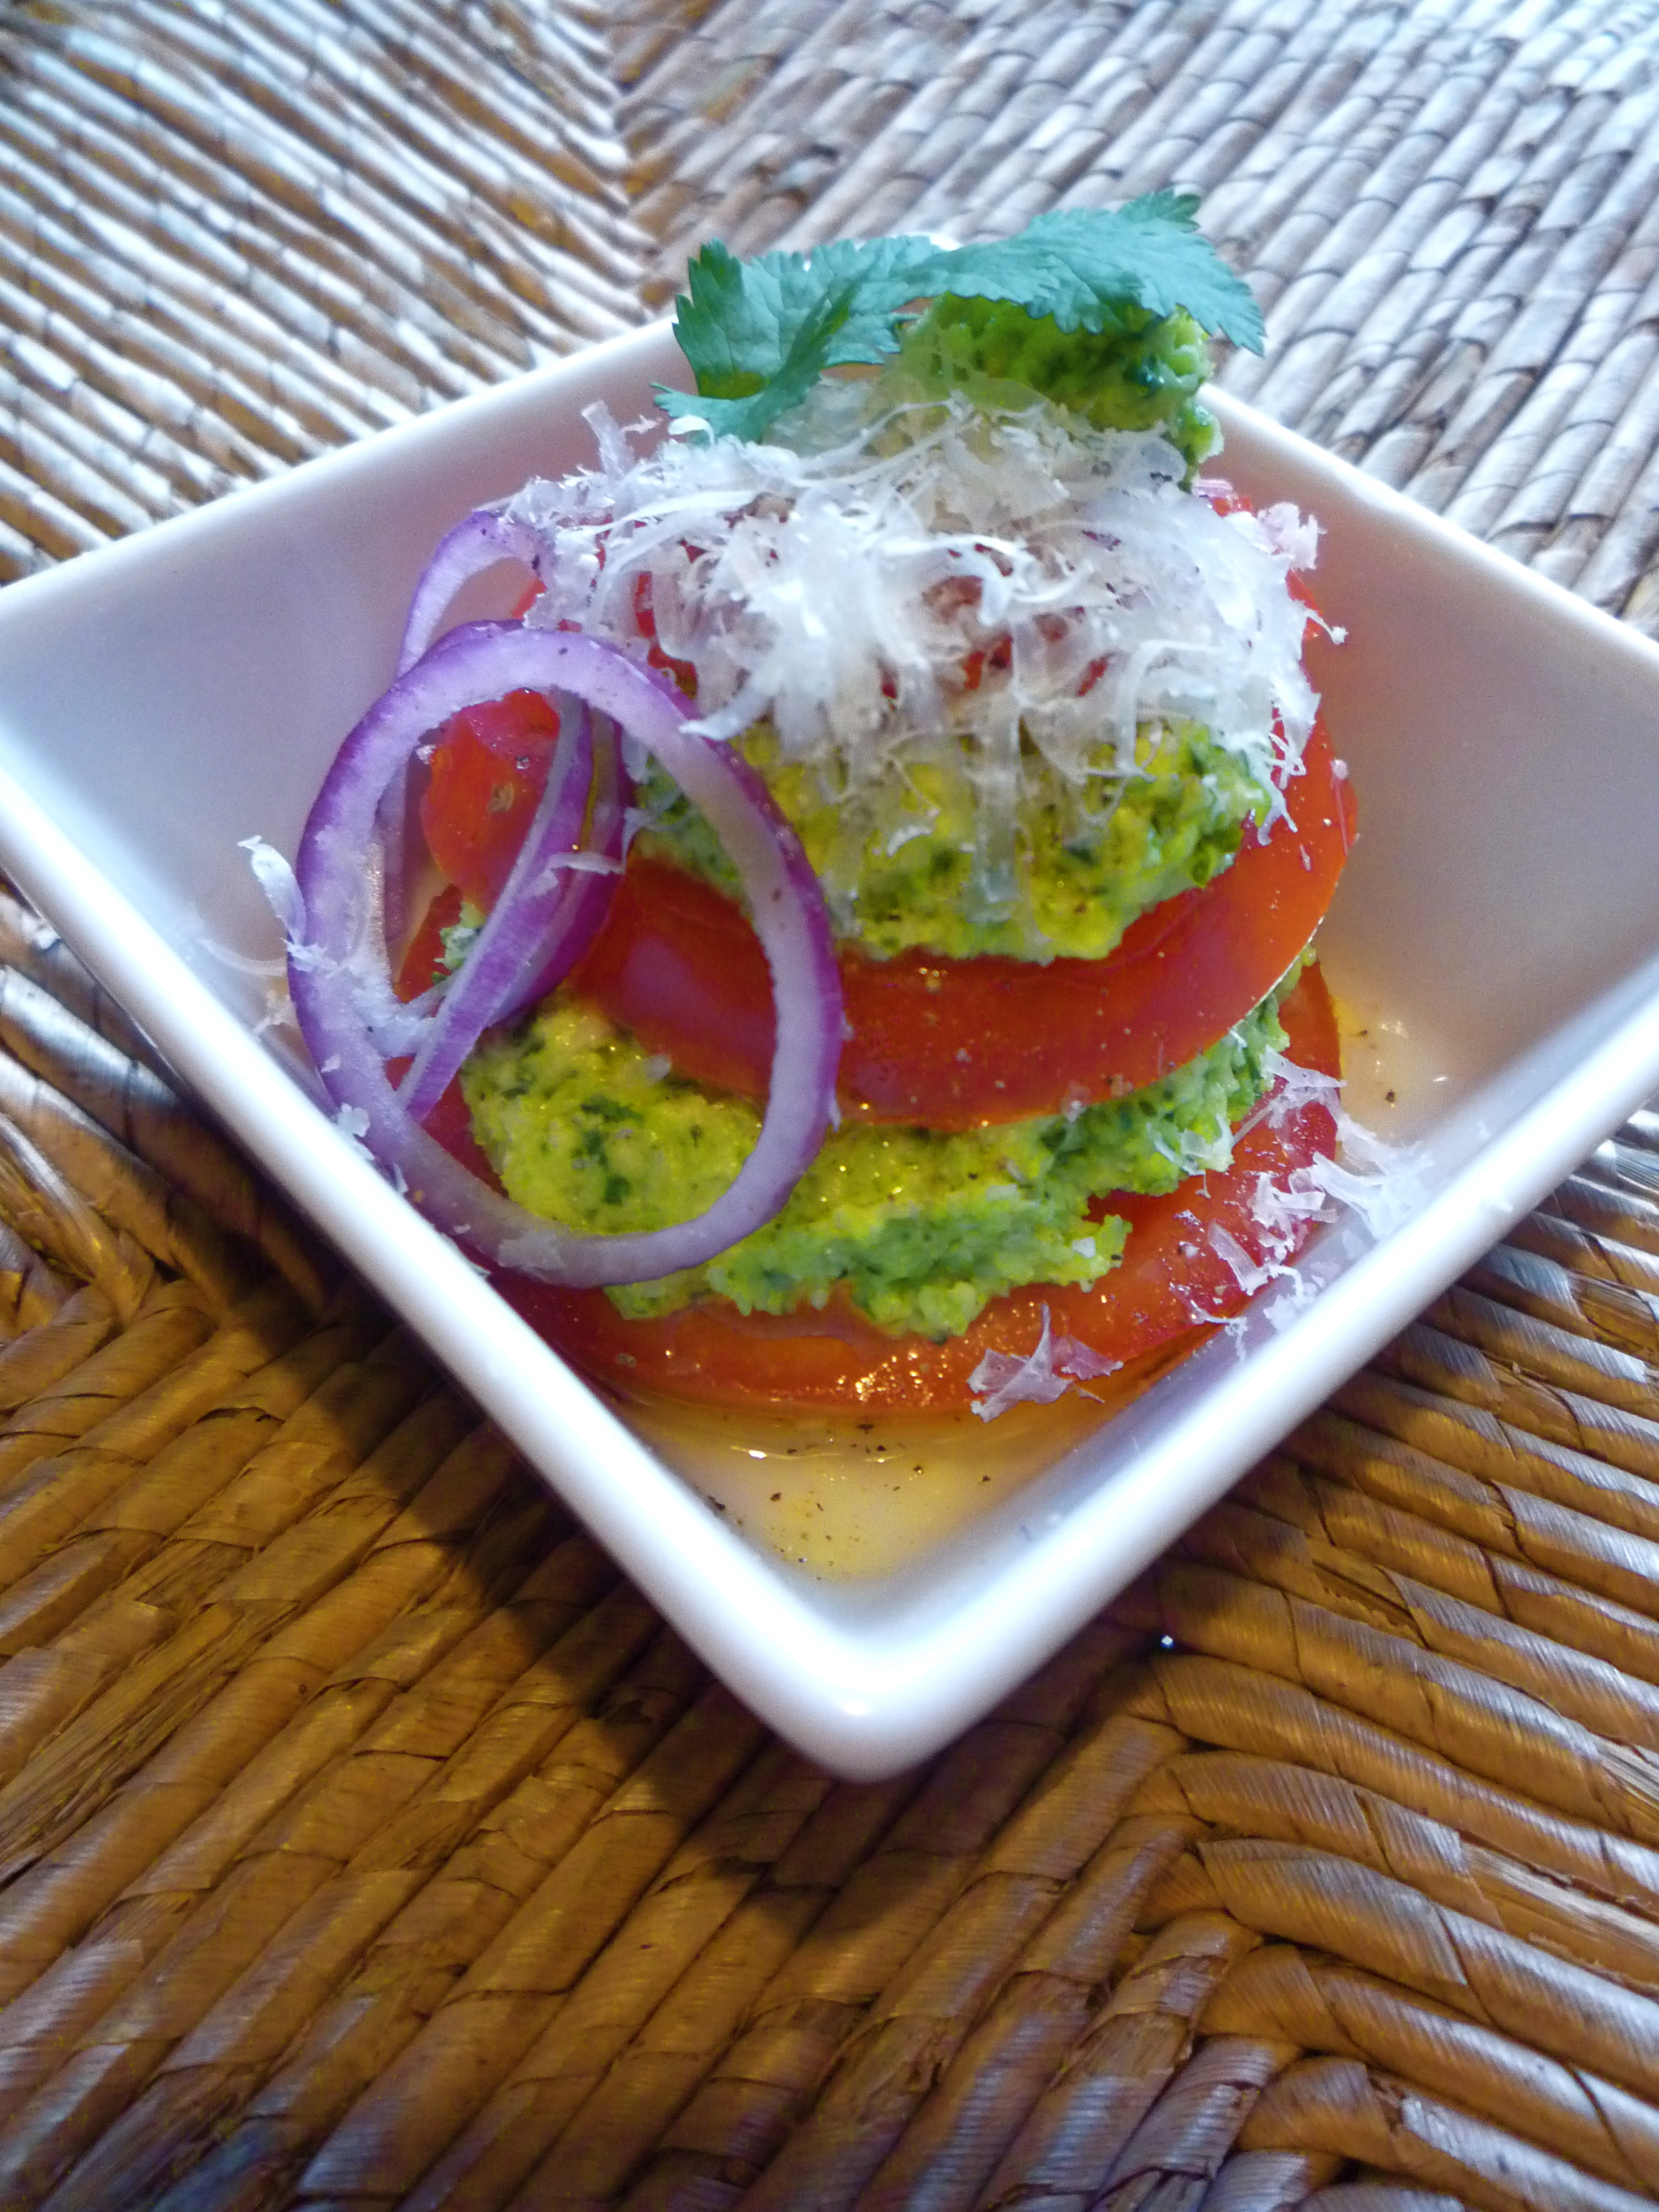 Broccoli Cilantro Pesto with Heirloom Tomatoes and Aged Manchego.